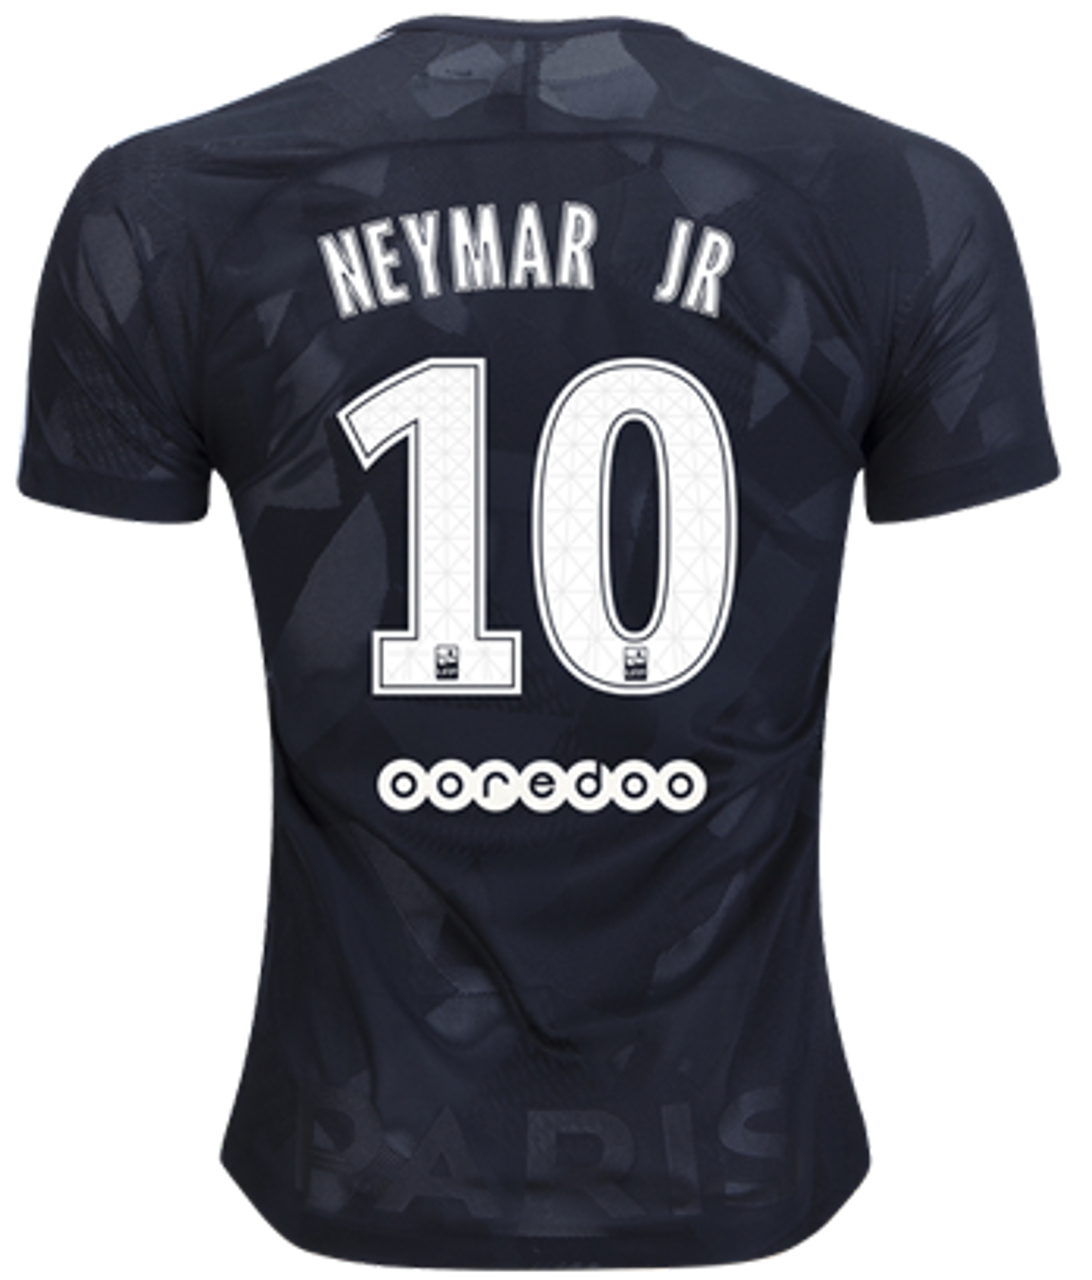 finest selection 3fa37 e1fba NIKE PARIS SAINT GERMAIN 2018 NEYMAR JR AUTHENTIC 3RD JERSEY